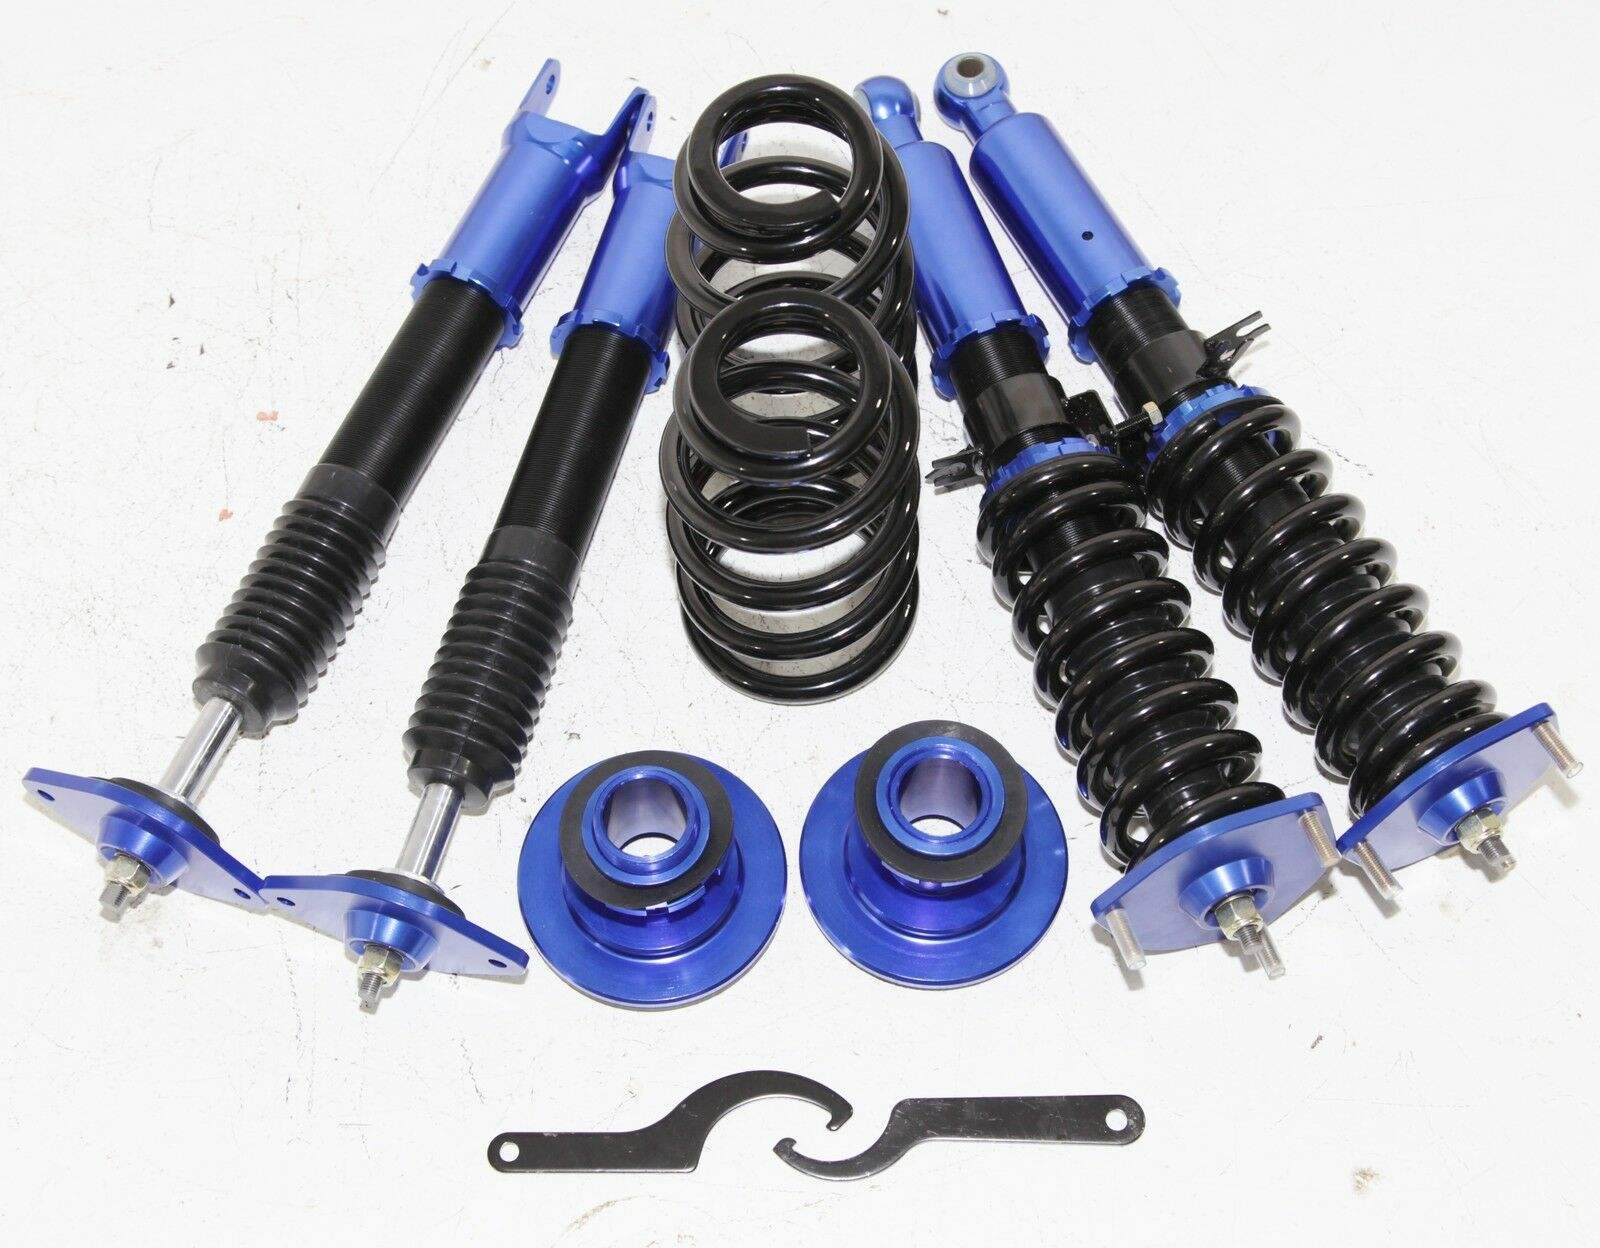 Non-adjustable Coilover Suspension lower kit for 08-11 Infiniti G37 Coupe / Sed@n RWD